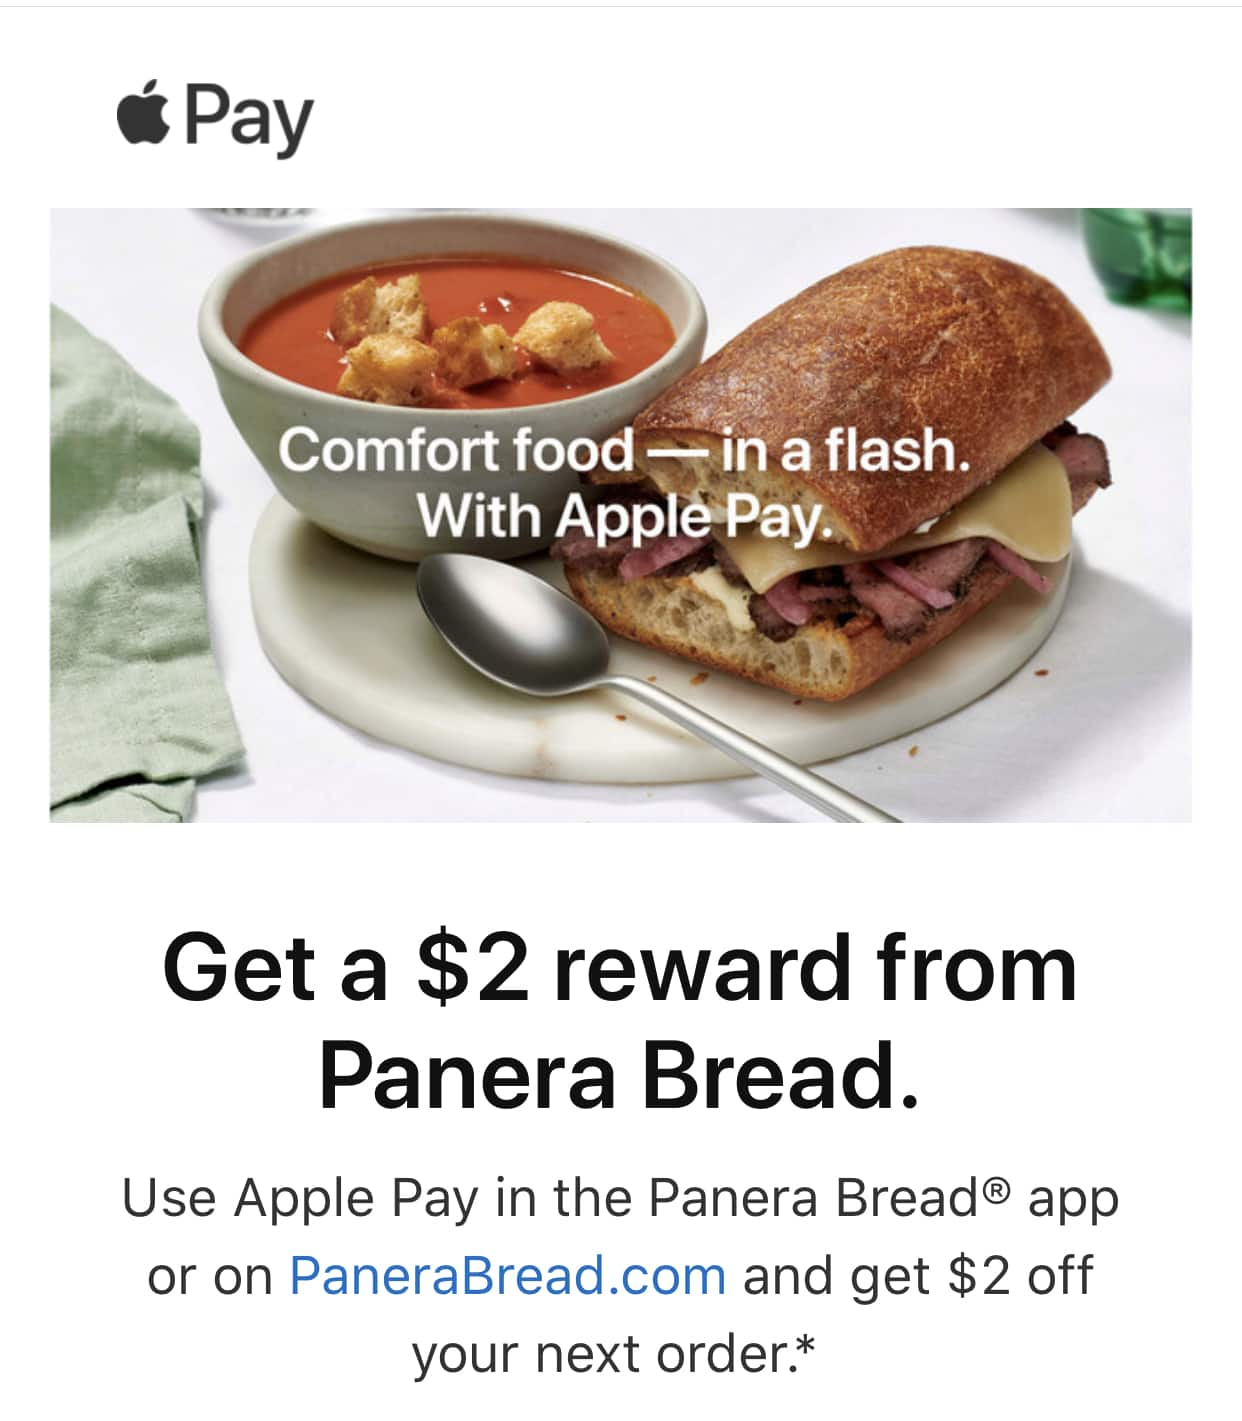 Use Apple Pay in the Panera Bread® app or on PaneraBread.com and get $2 off your next order ymmv